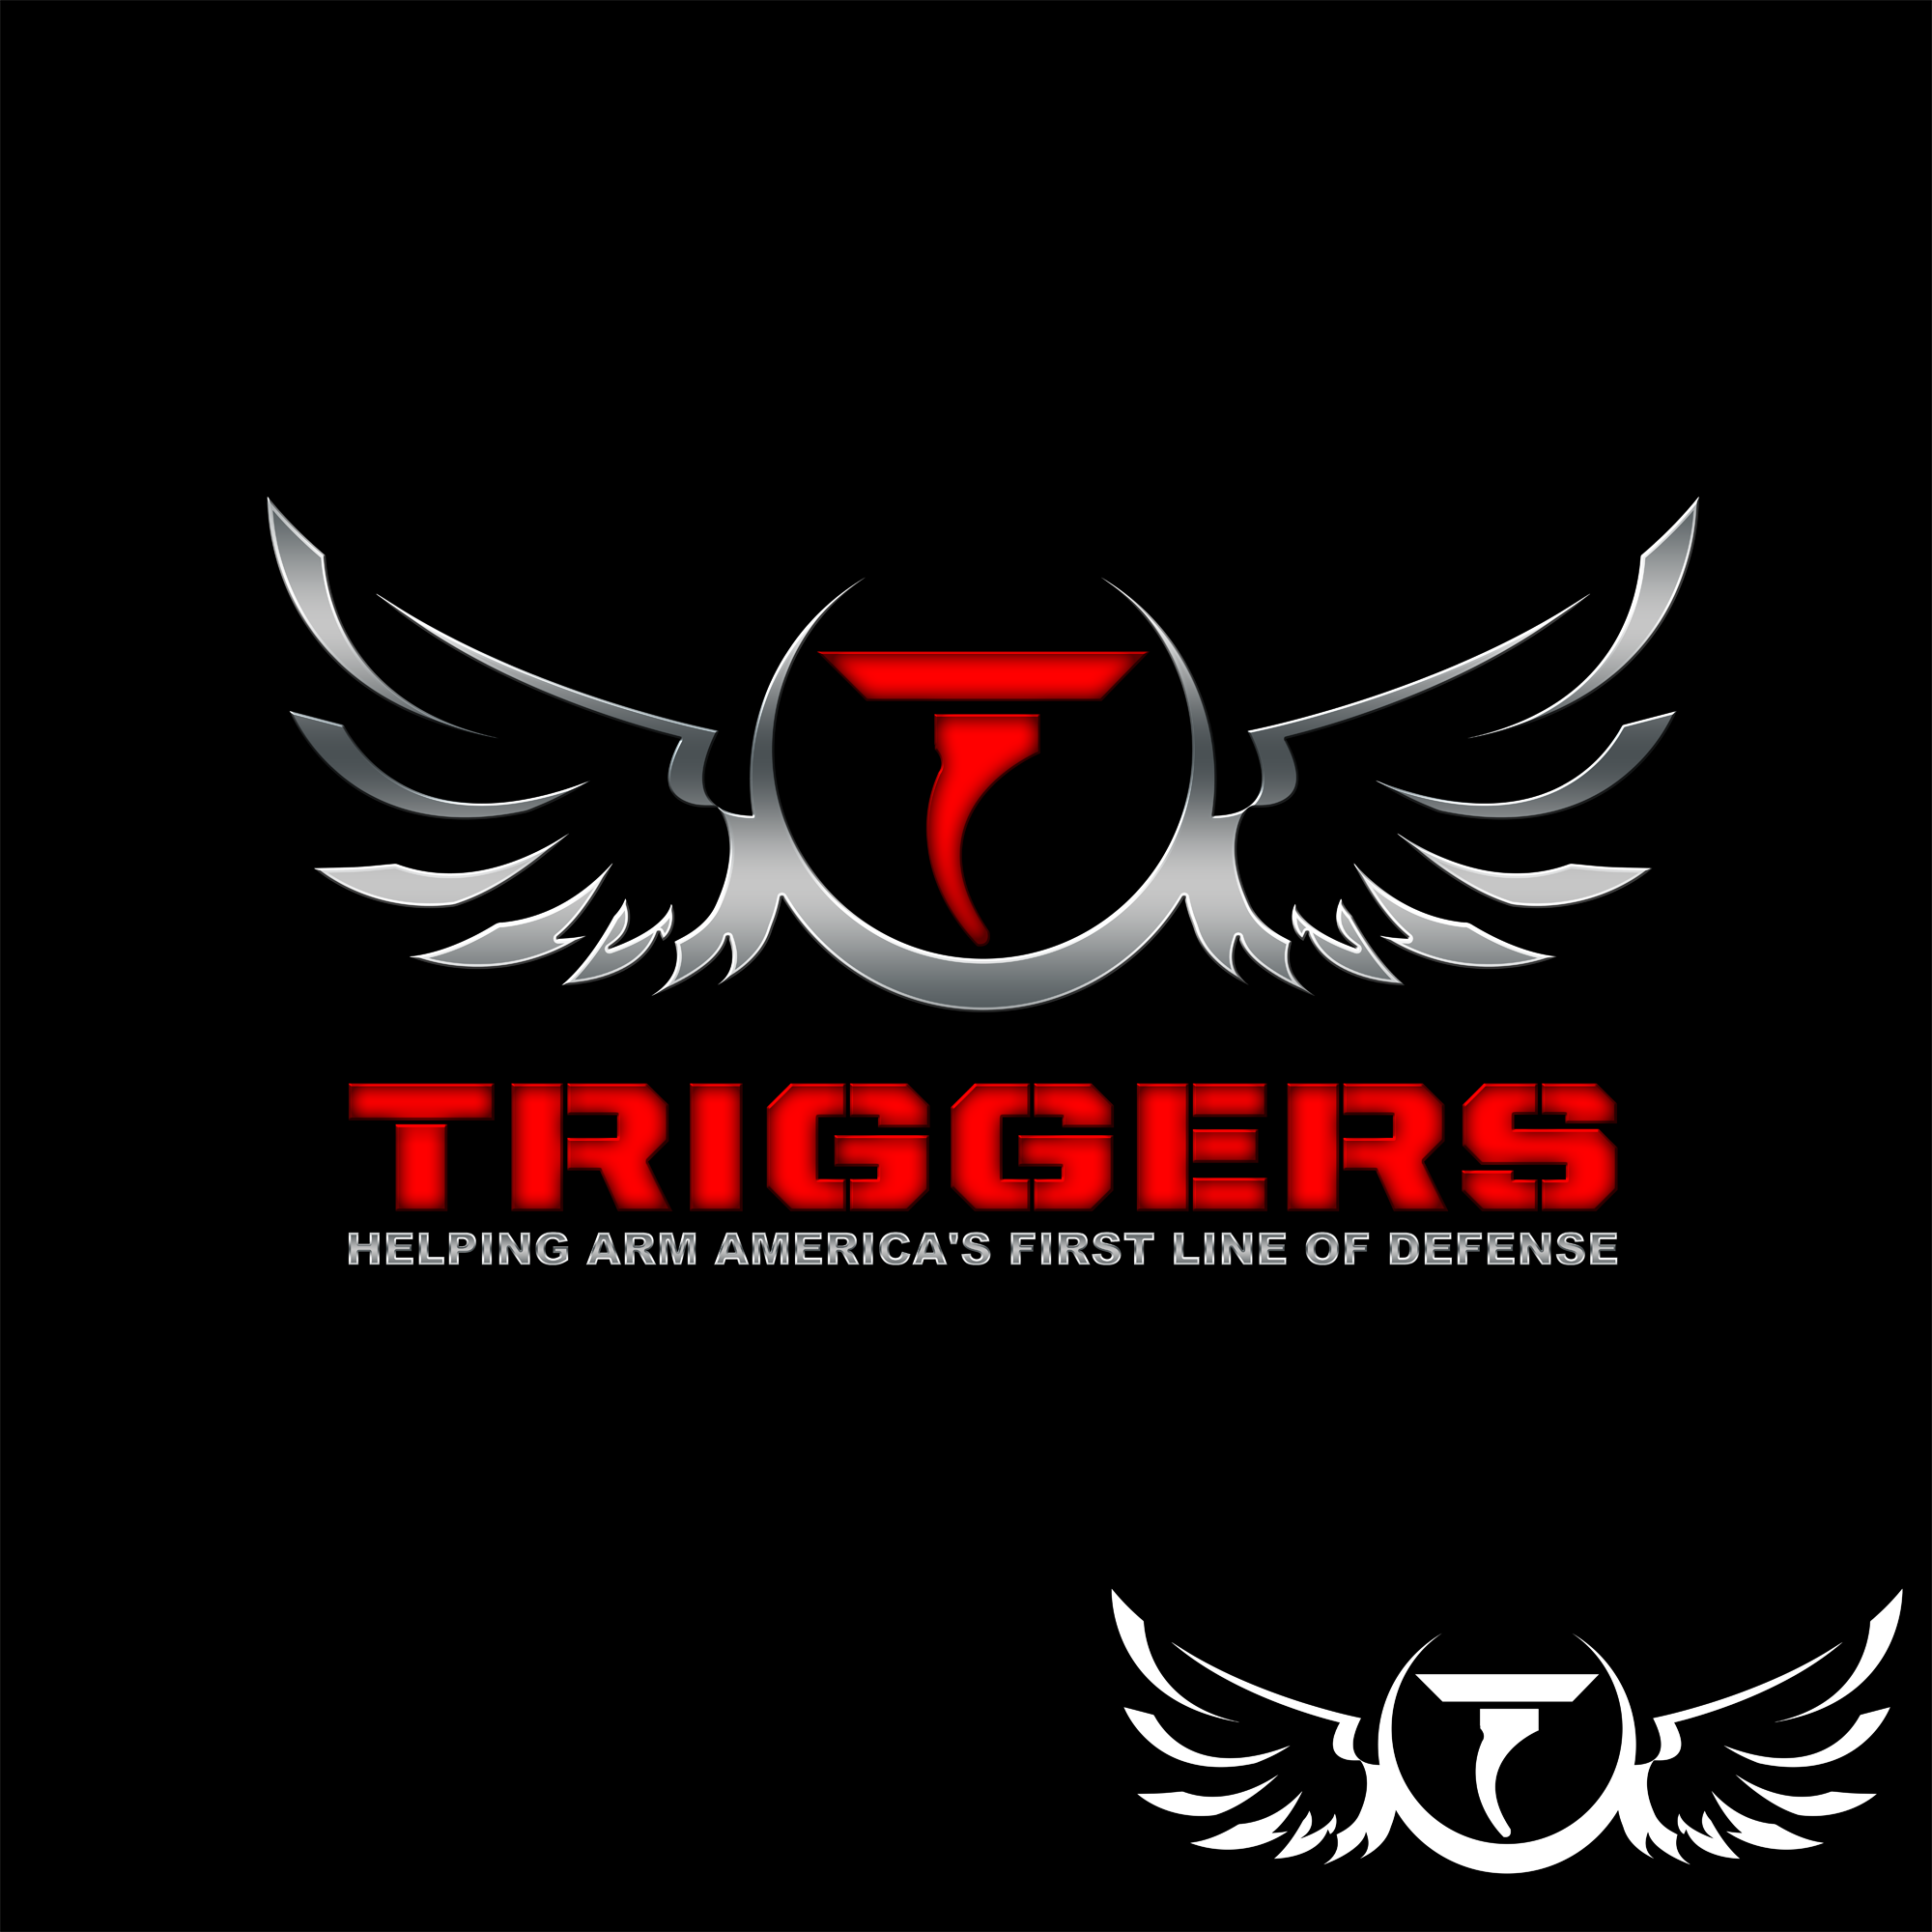 New logo wanted for Triggers Inc.